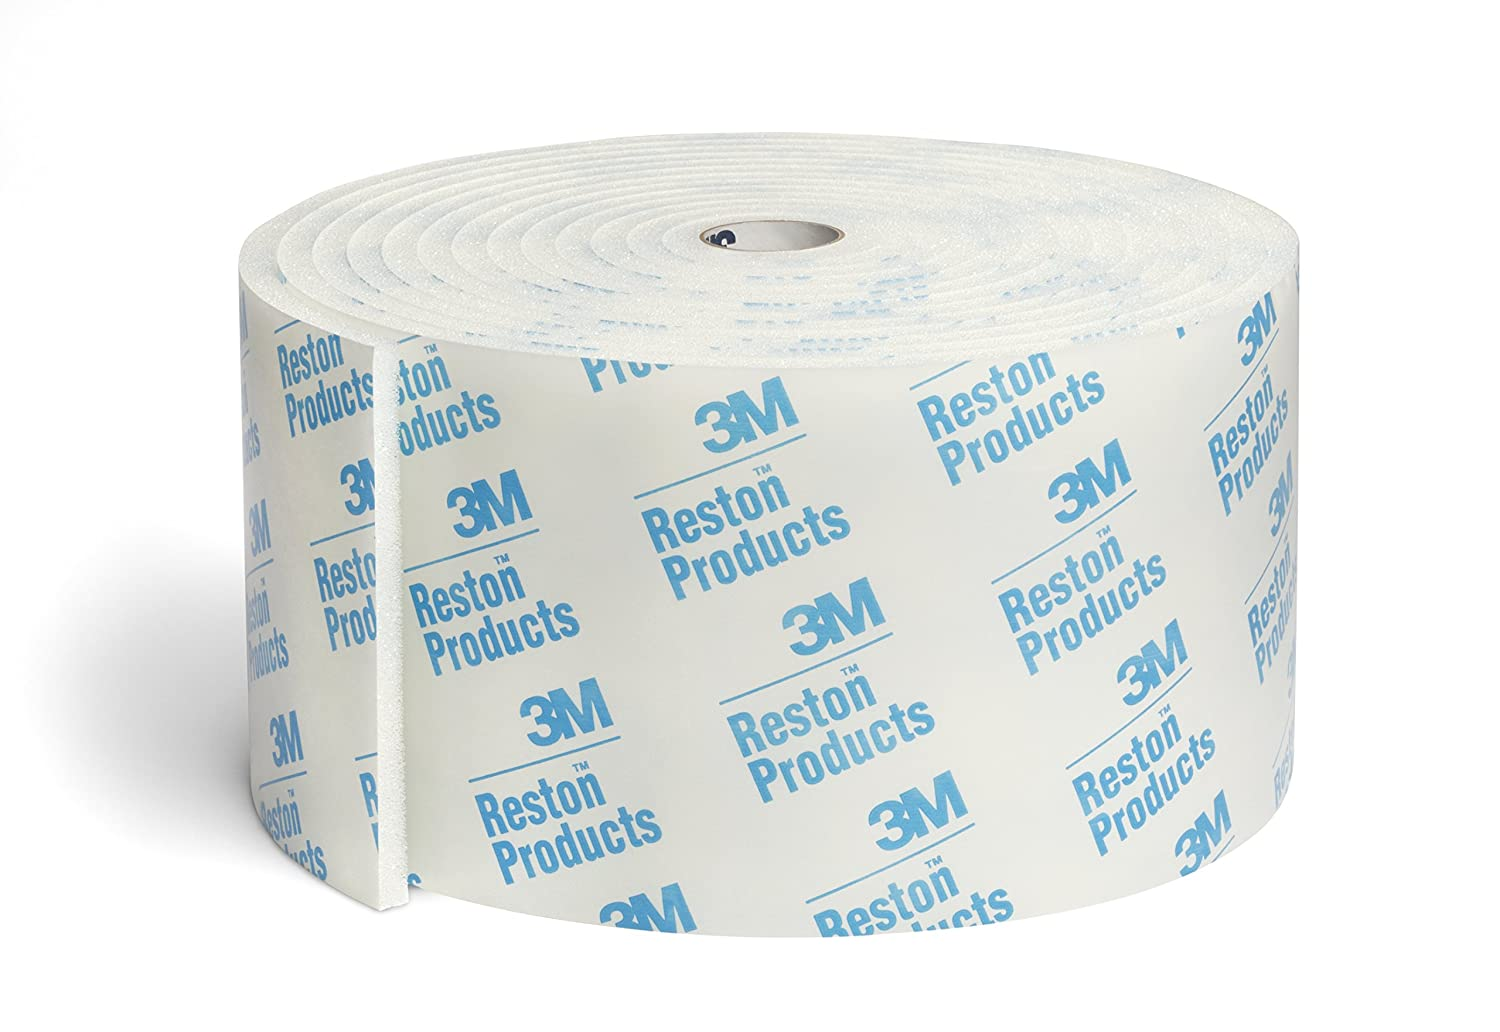 3M 1563l Reston Self-Adhering Foam Products (Pack Of 5)